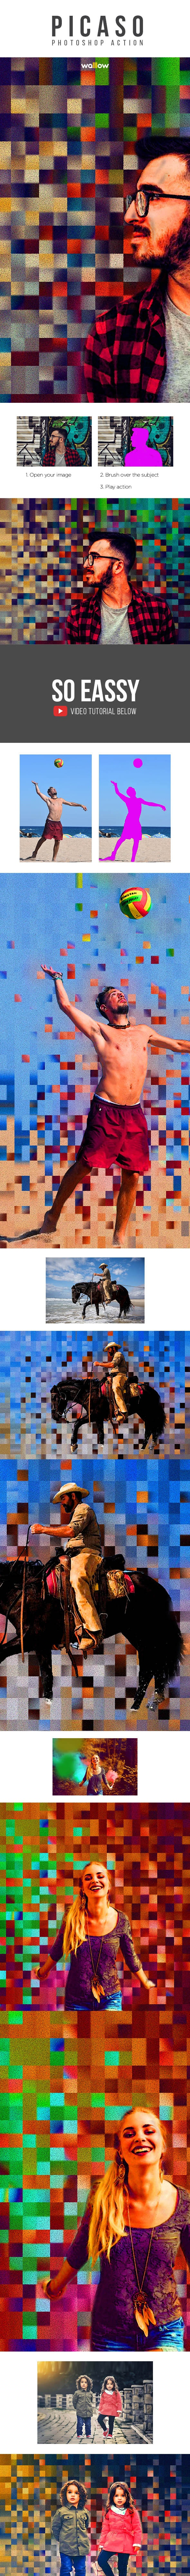 Picaso Photoshop Action - Actions Photoshop